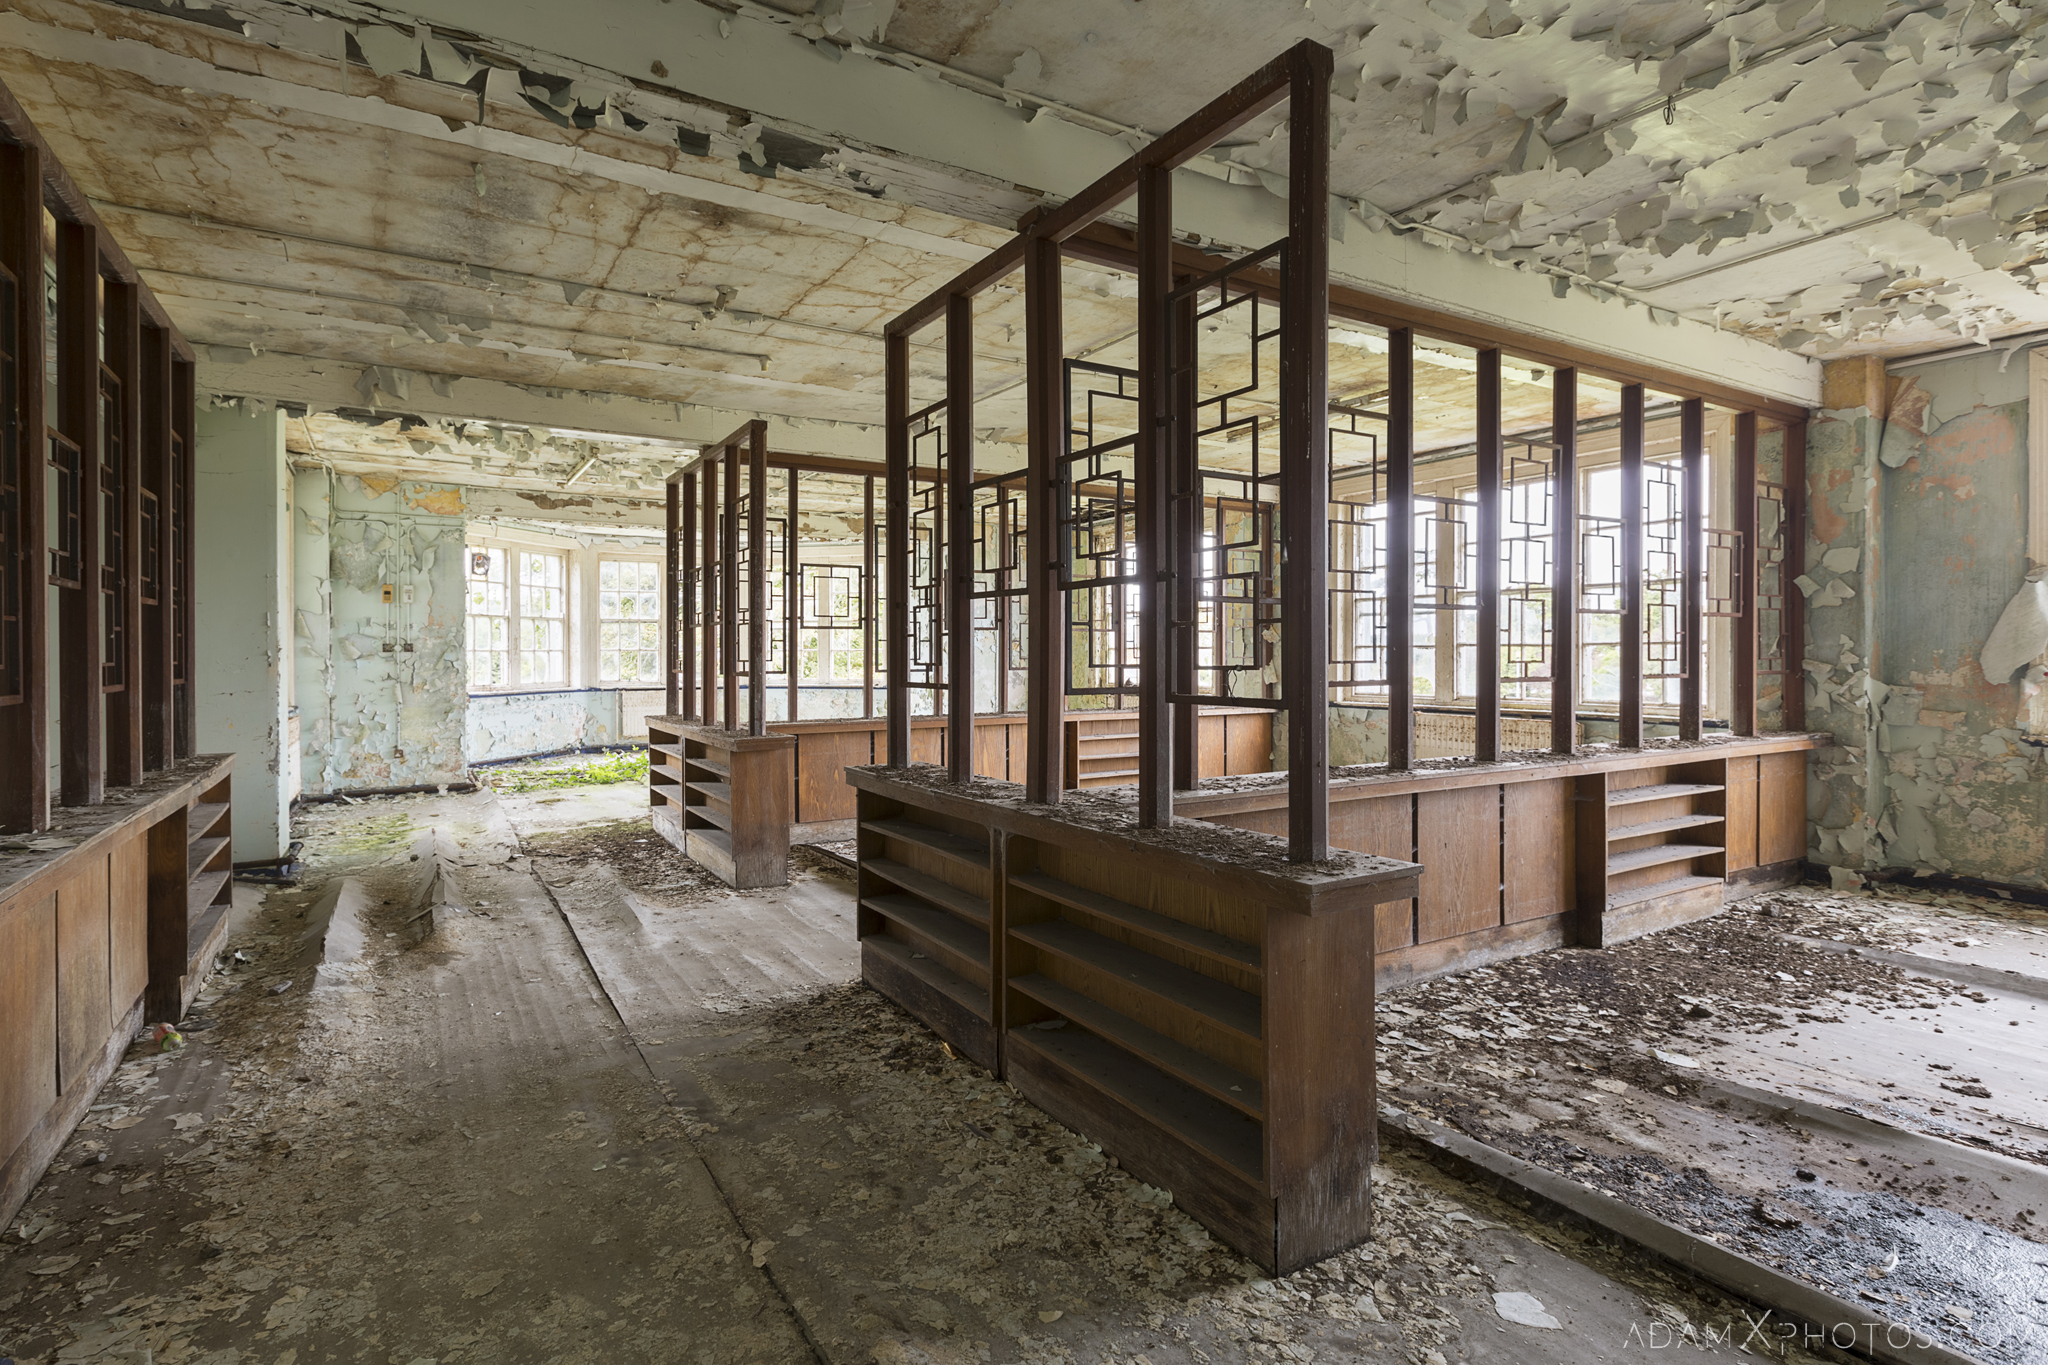 Wooden dividers ward Ennis District Lunatic Asylum Our Lady's Hospital Ennis County Clare Adam X Urbex Urban Exploration Ireland Ballinasloe Access 2017 Abandoned decay lost forgotten derelict location creepy haunting eerie